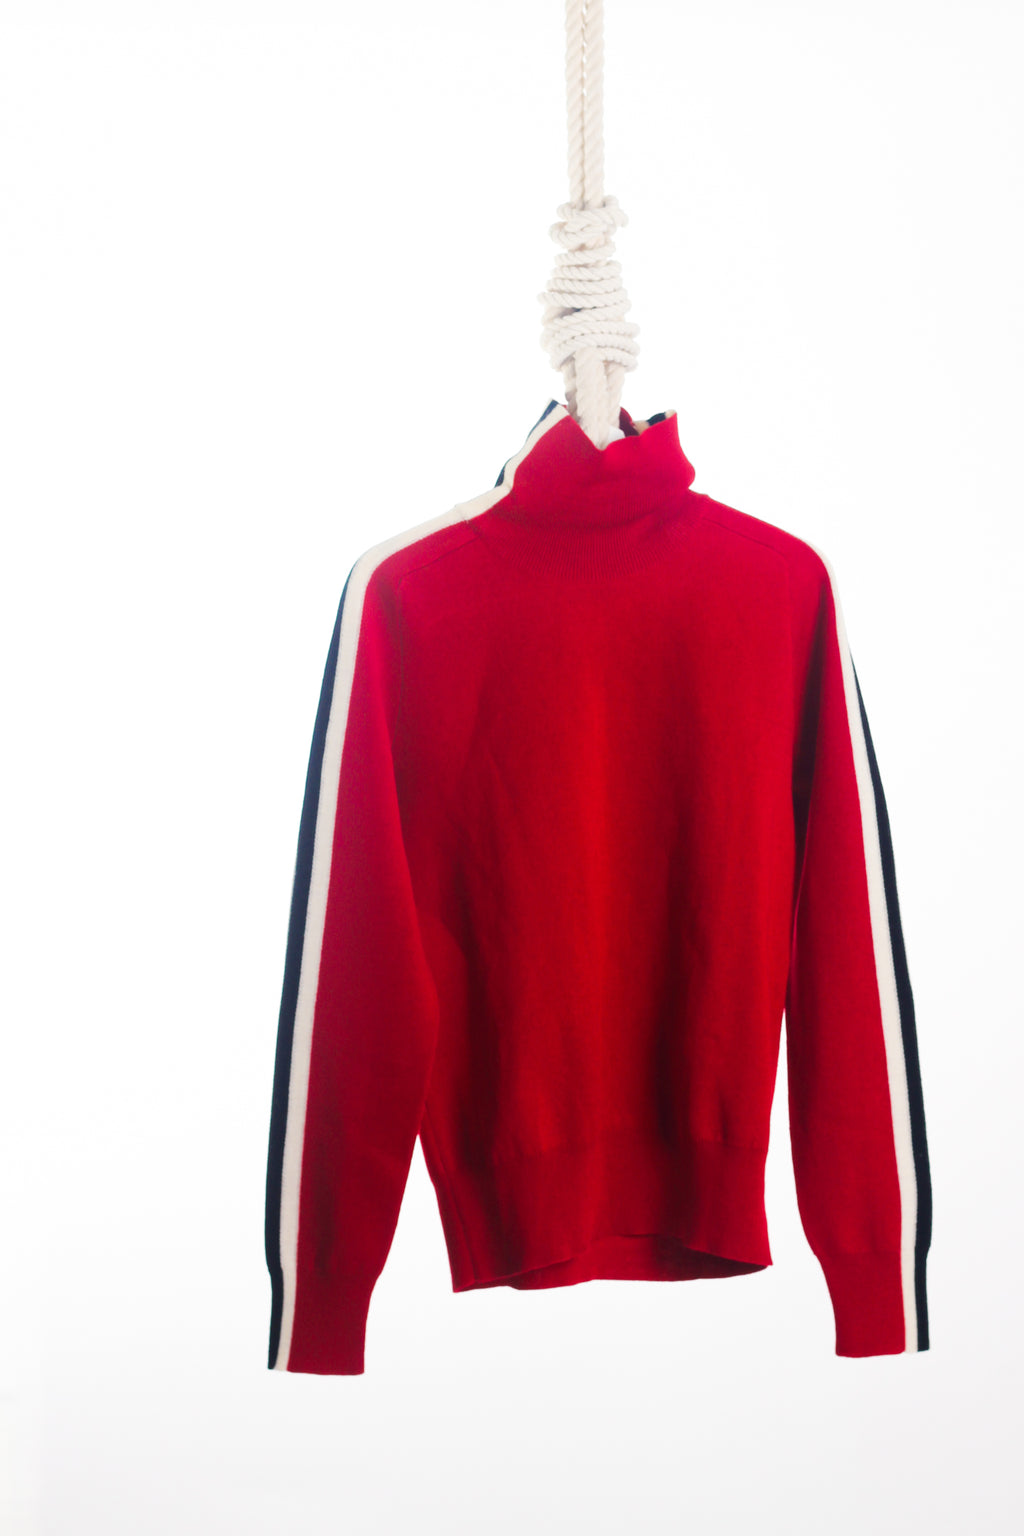 DSQUARED2 Red Ski turtleneck jumper - Size L